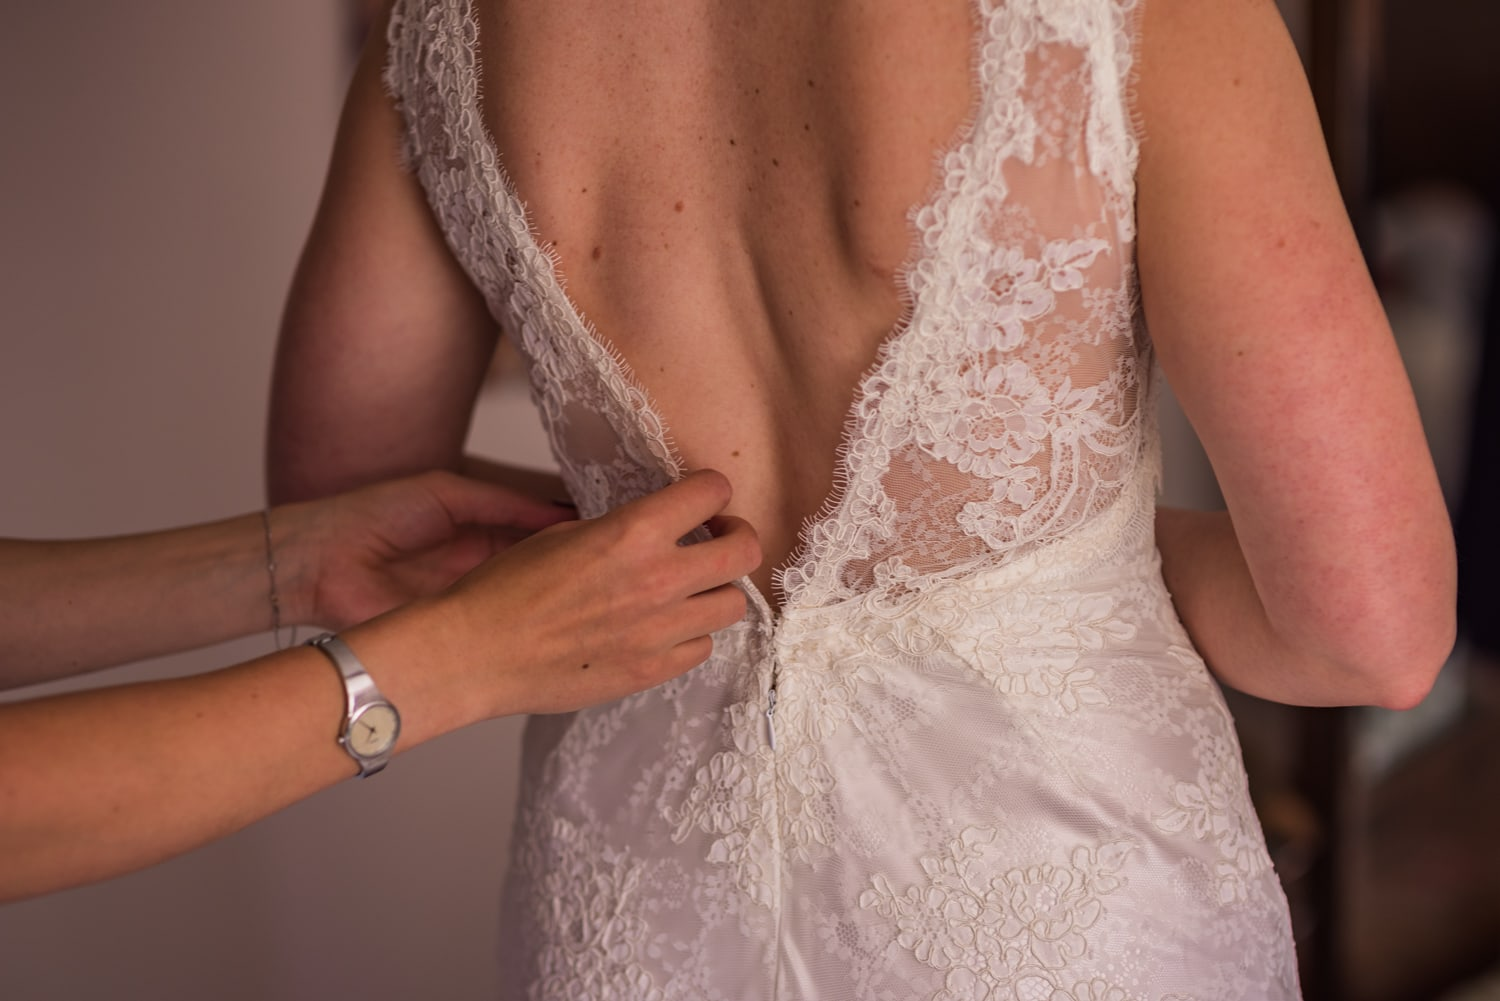 017-back-of-wedding-dress.jpg